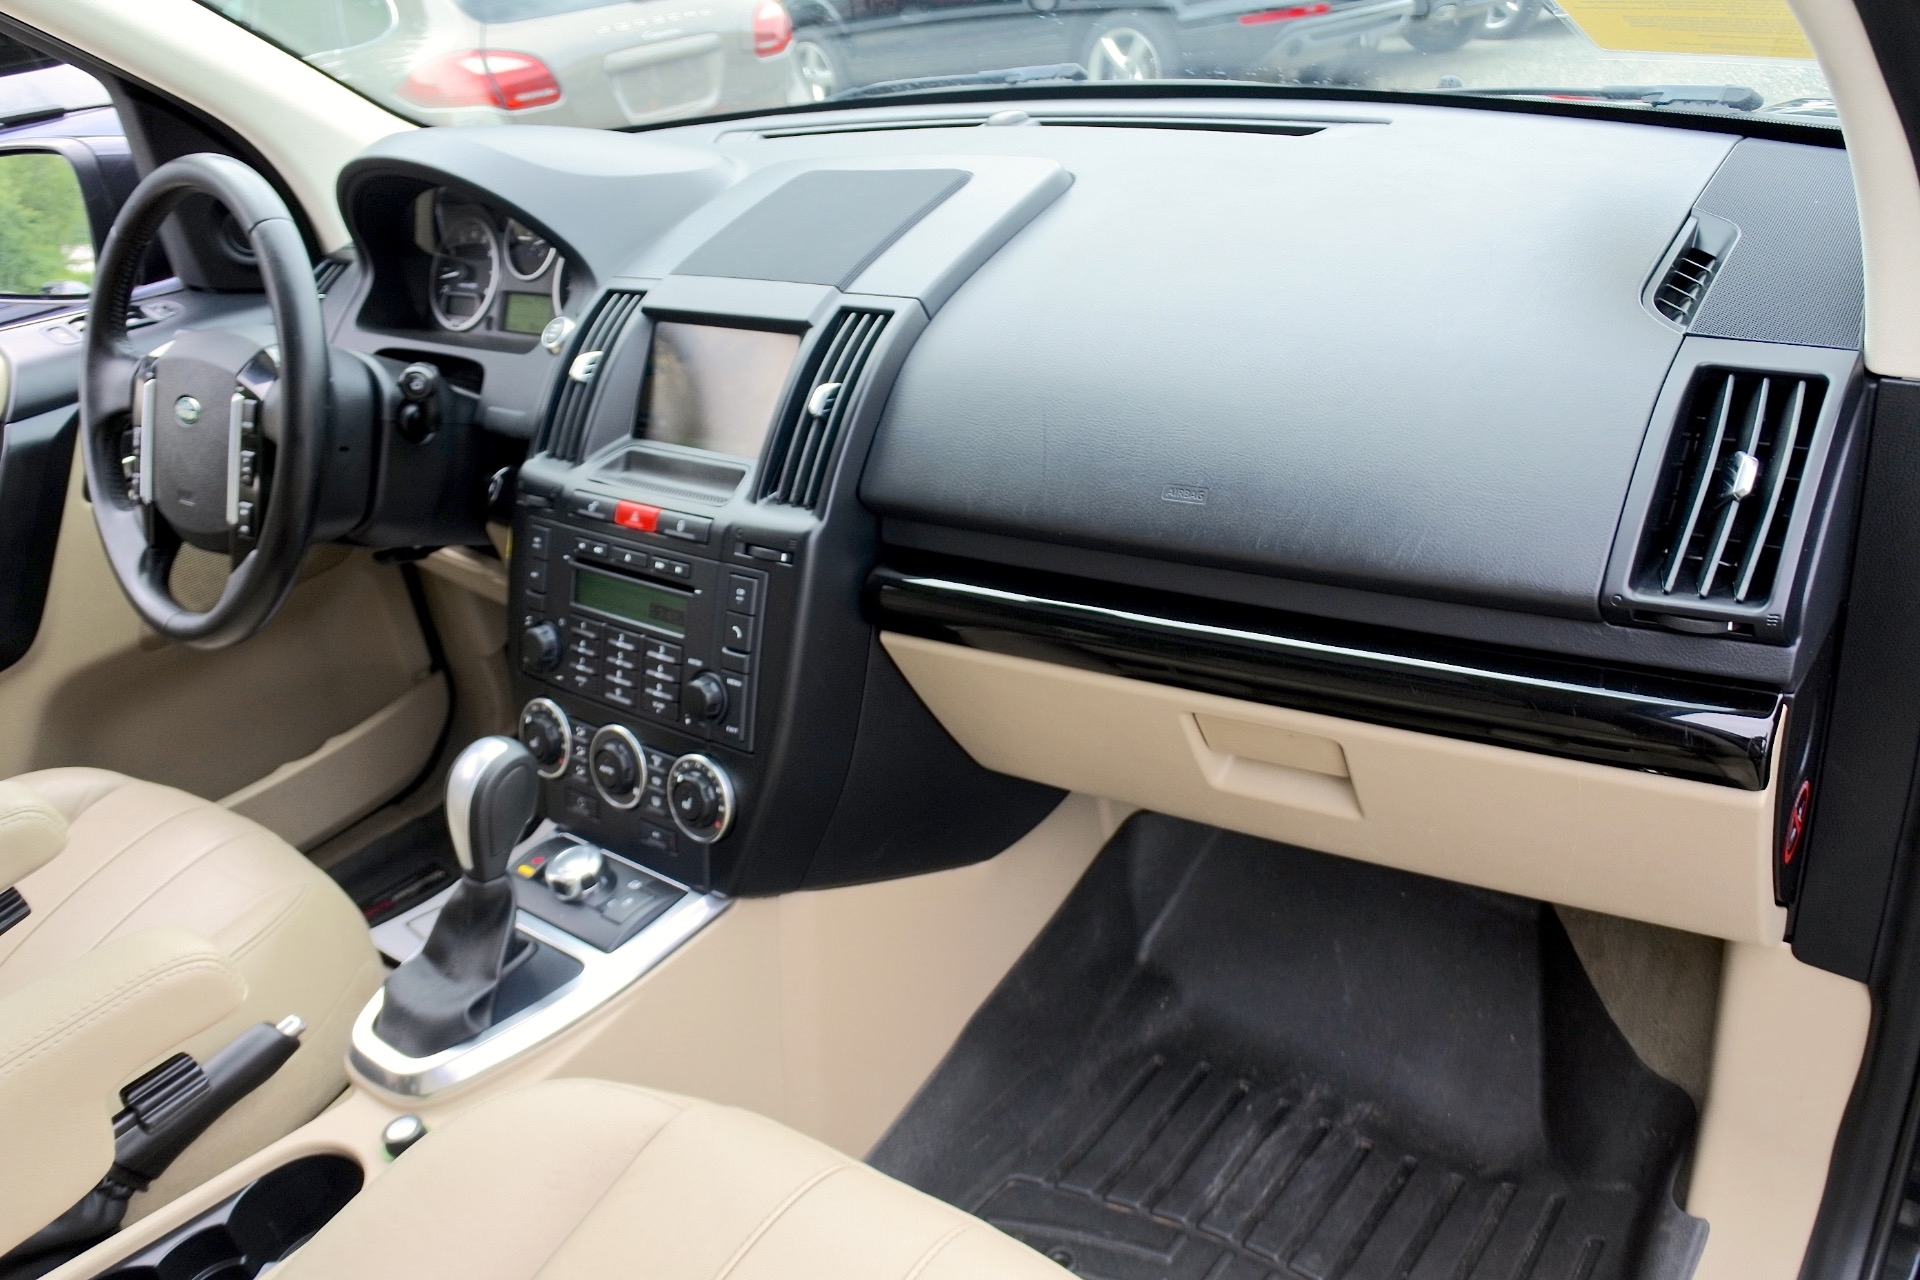 Used 2012 Land Rover Lr2 HSE AWD Used 2012 Land Rover Lr2 HSE AWD for sale  at Metro West Motorcars LLC in Shrewsbury MA 20